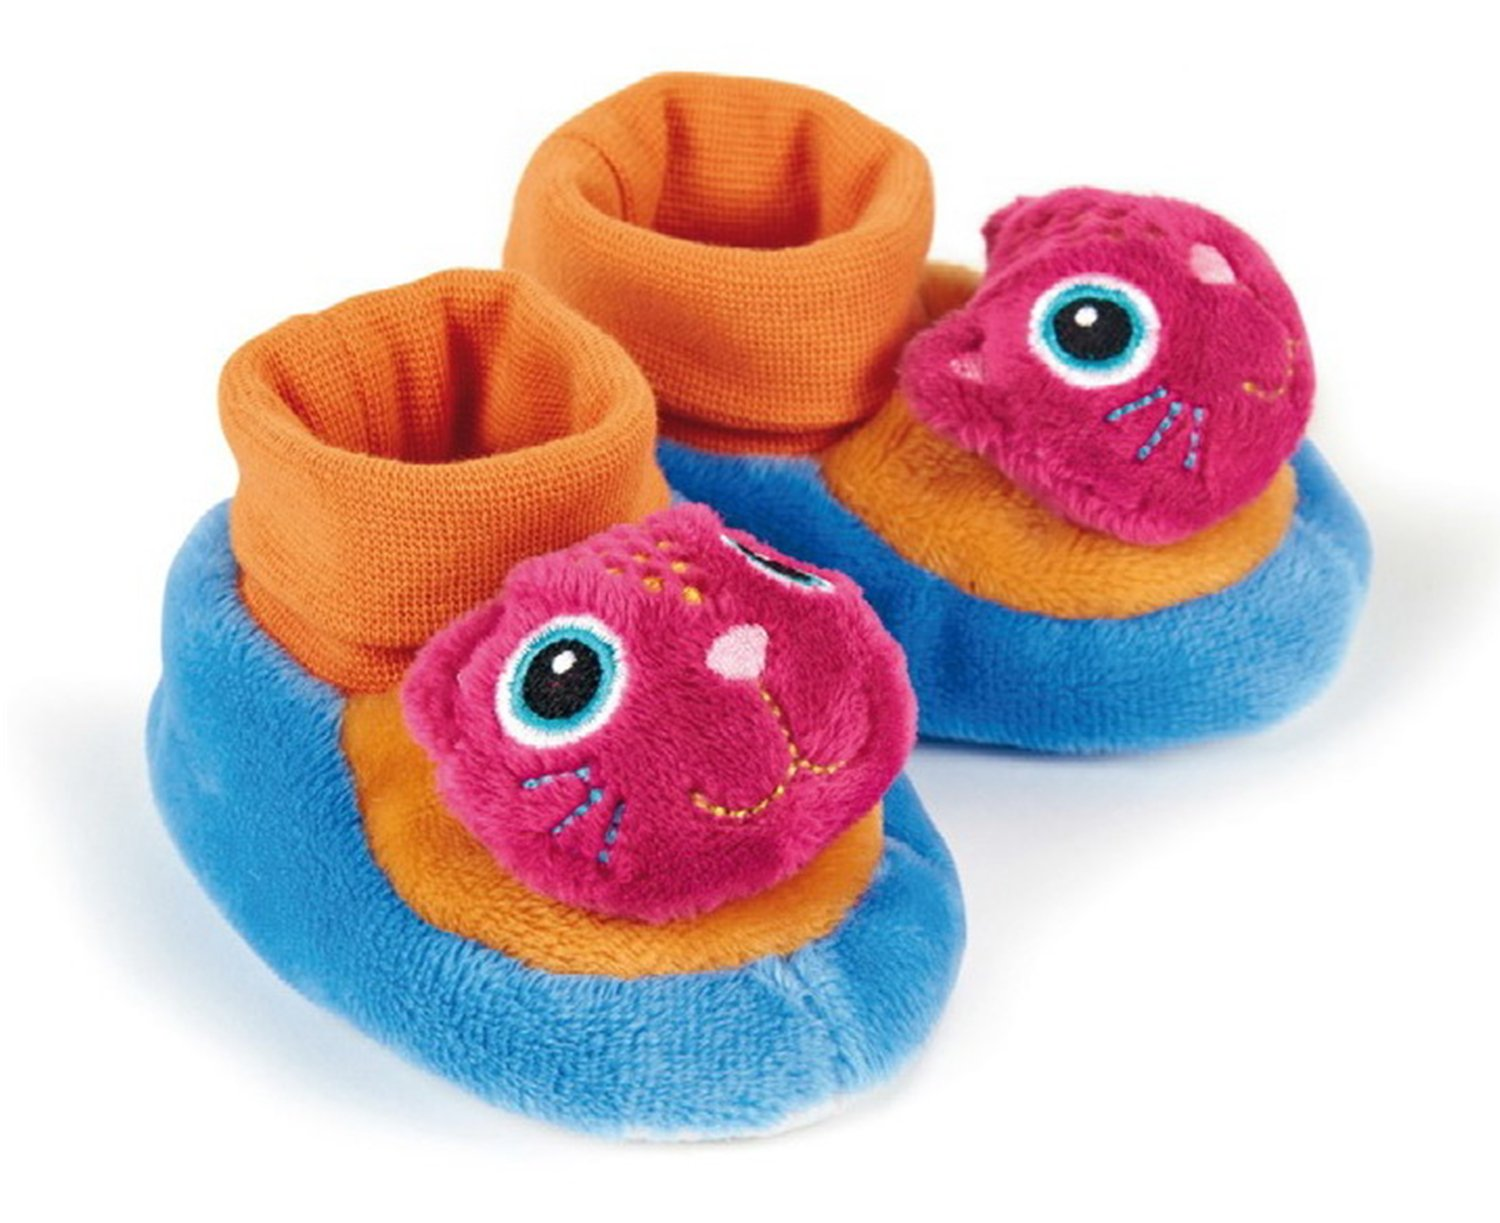 Little Helper Oops Sumptuously Soft Cute Booties/Slippers with Non-Slip Grip and Rattle in Cute Cat Design 61001.21